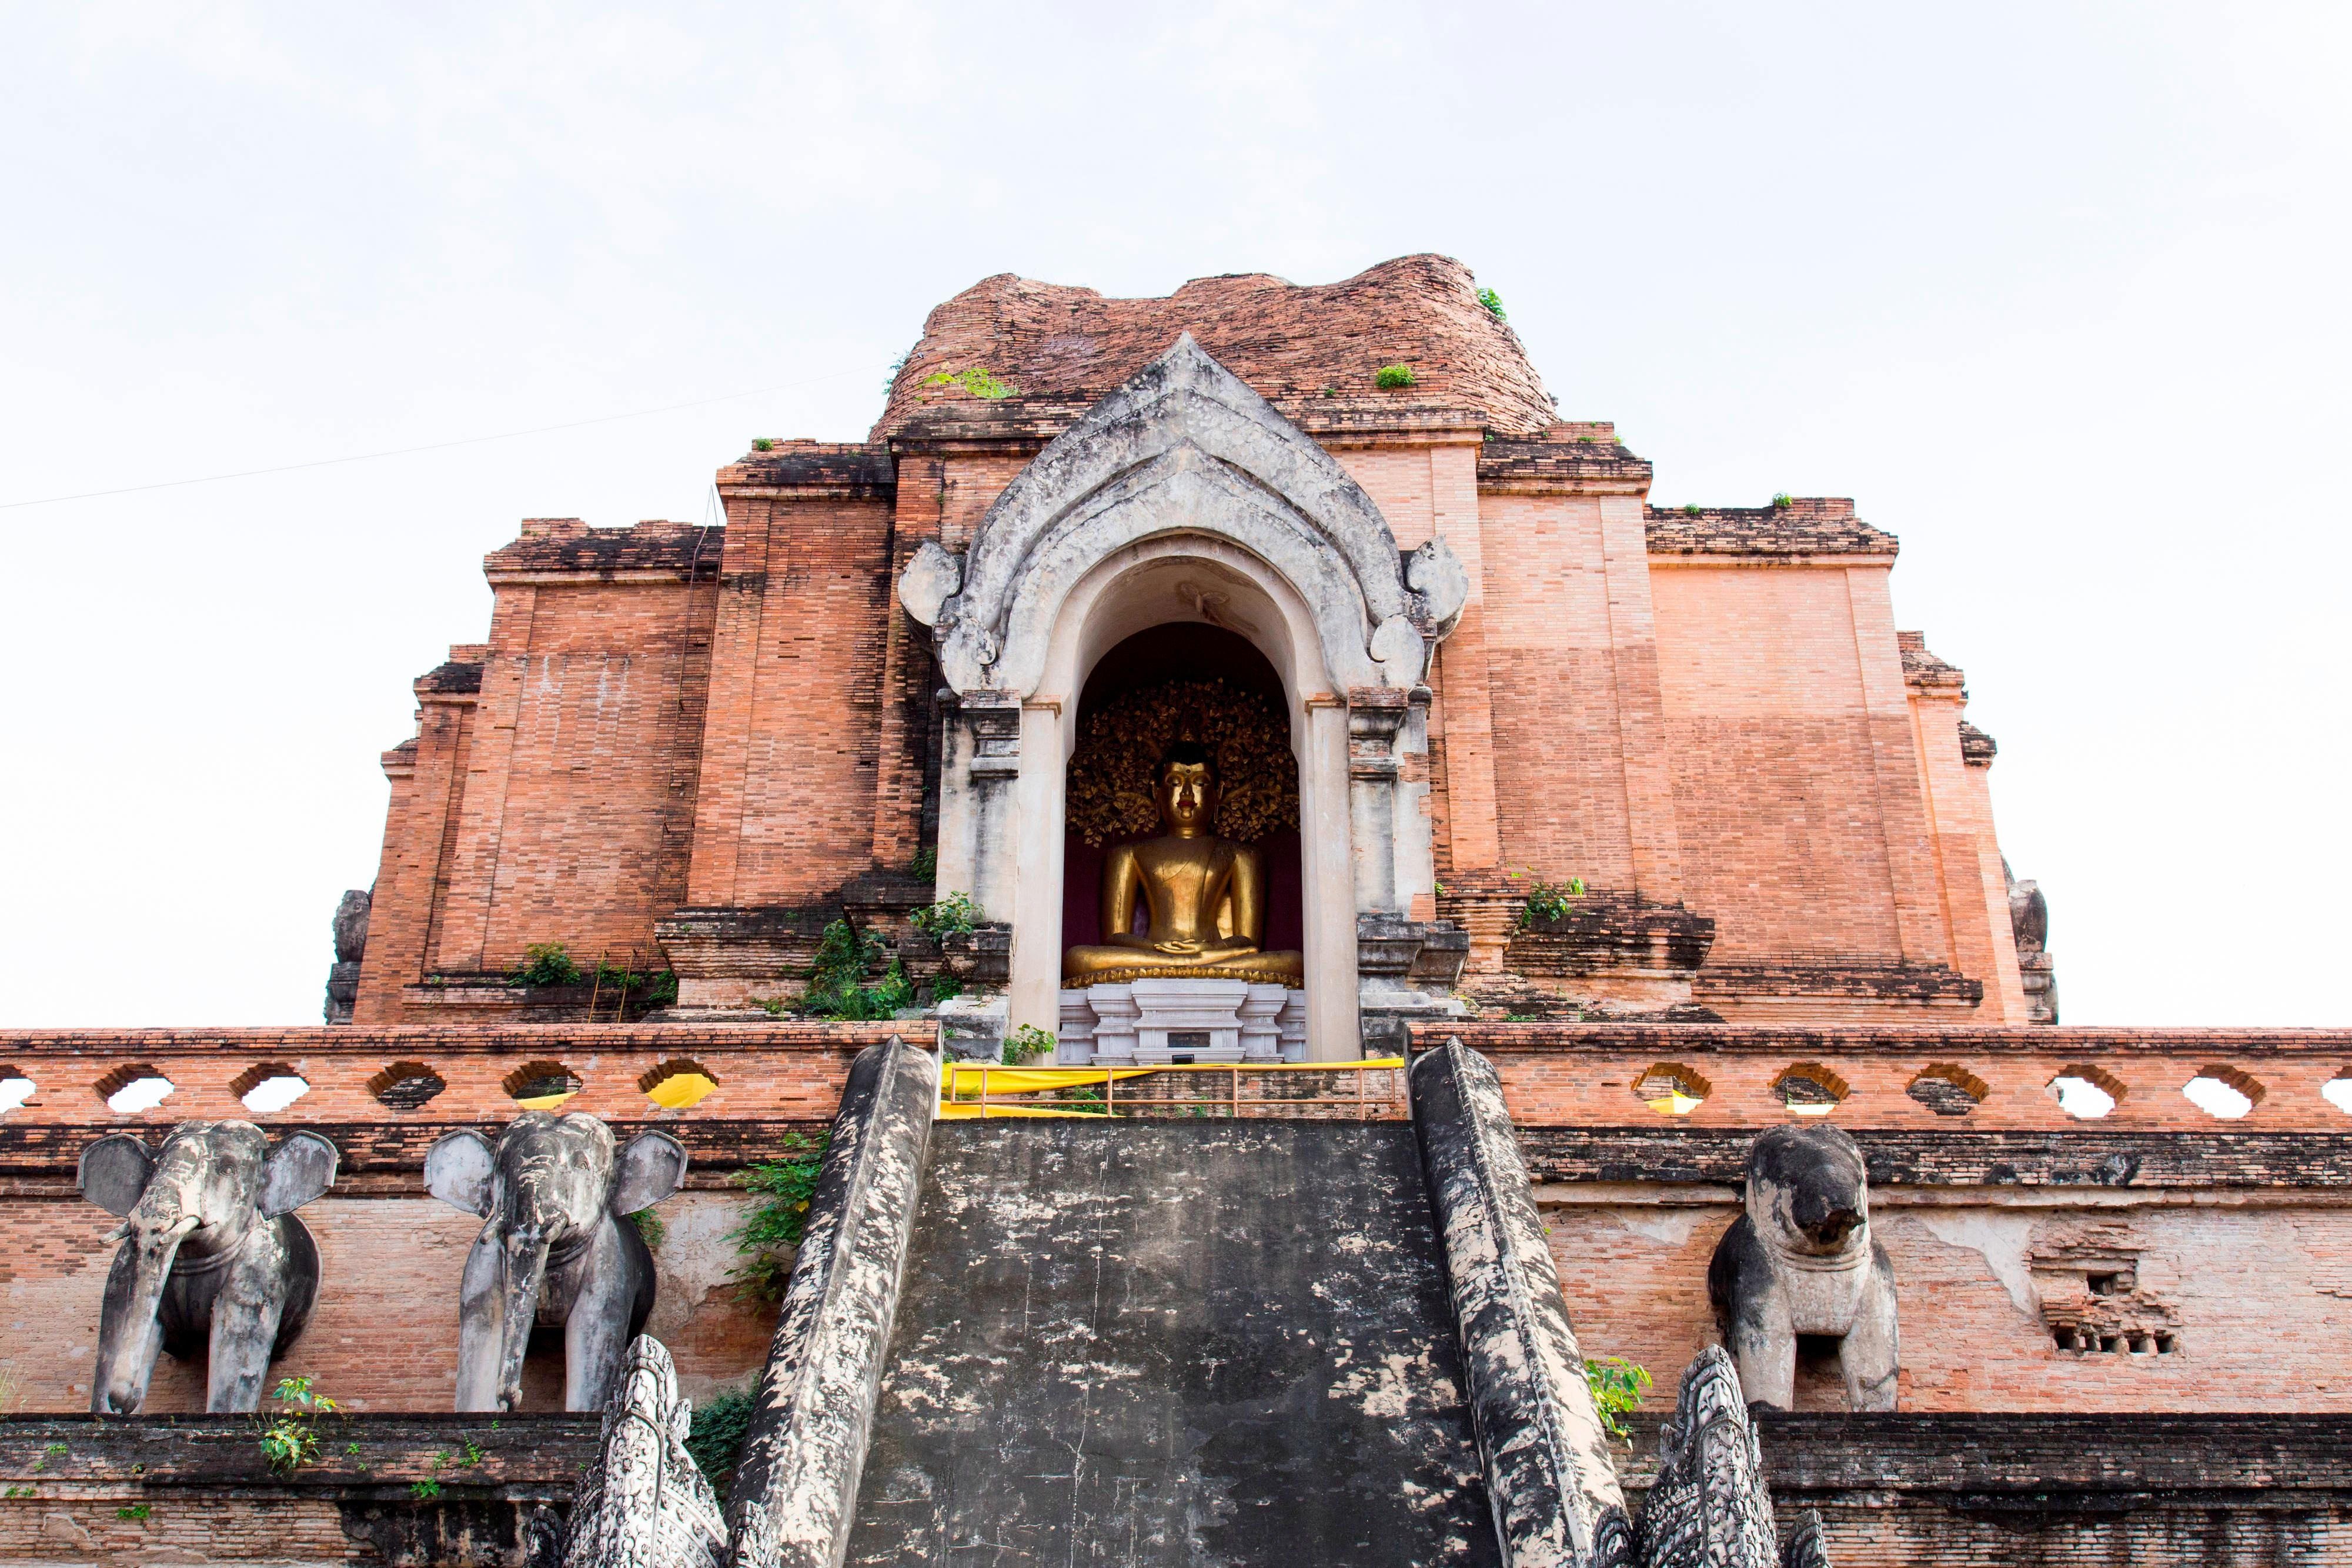 Chedi Luang temple